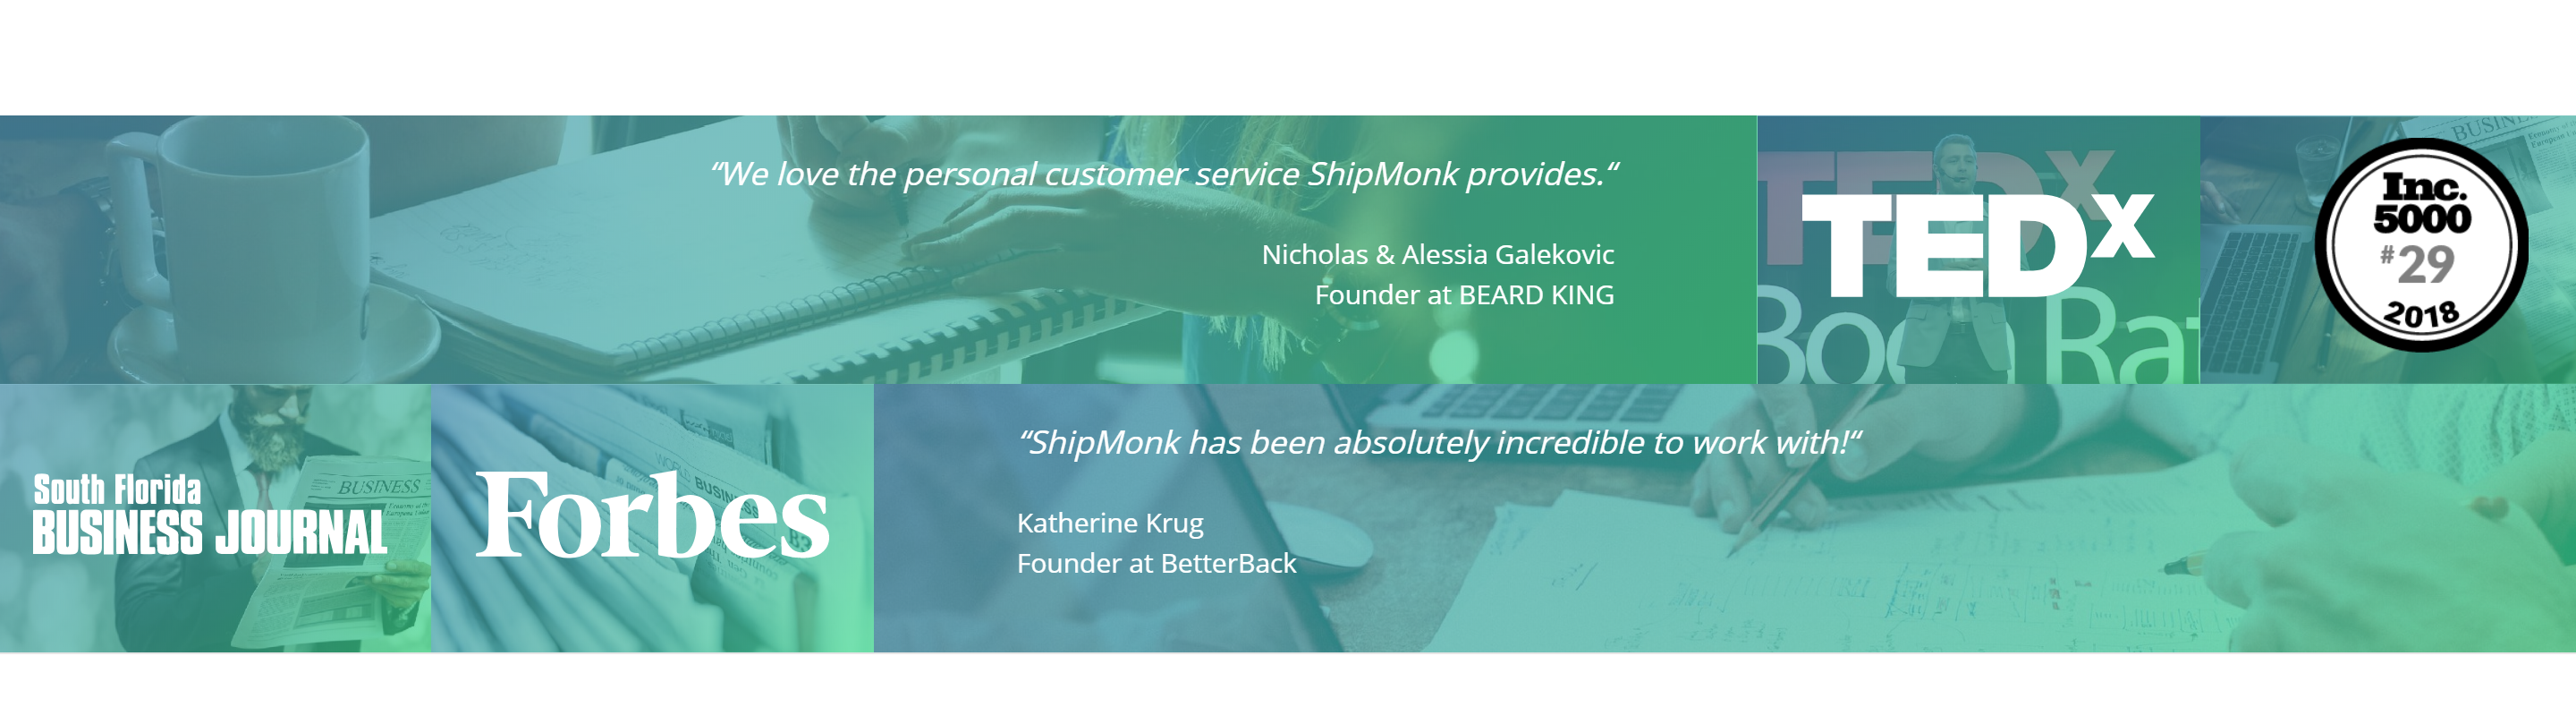 shipmonk features